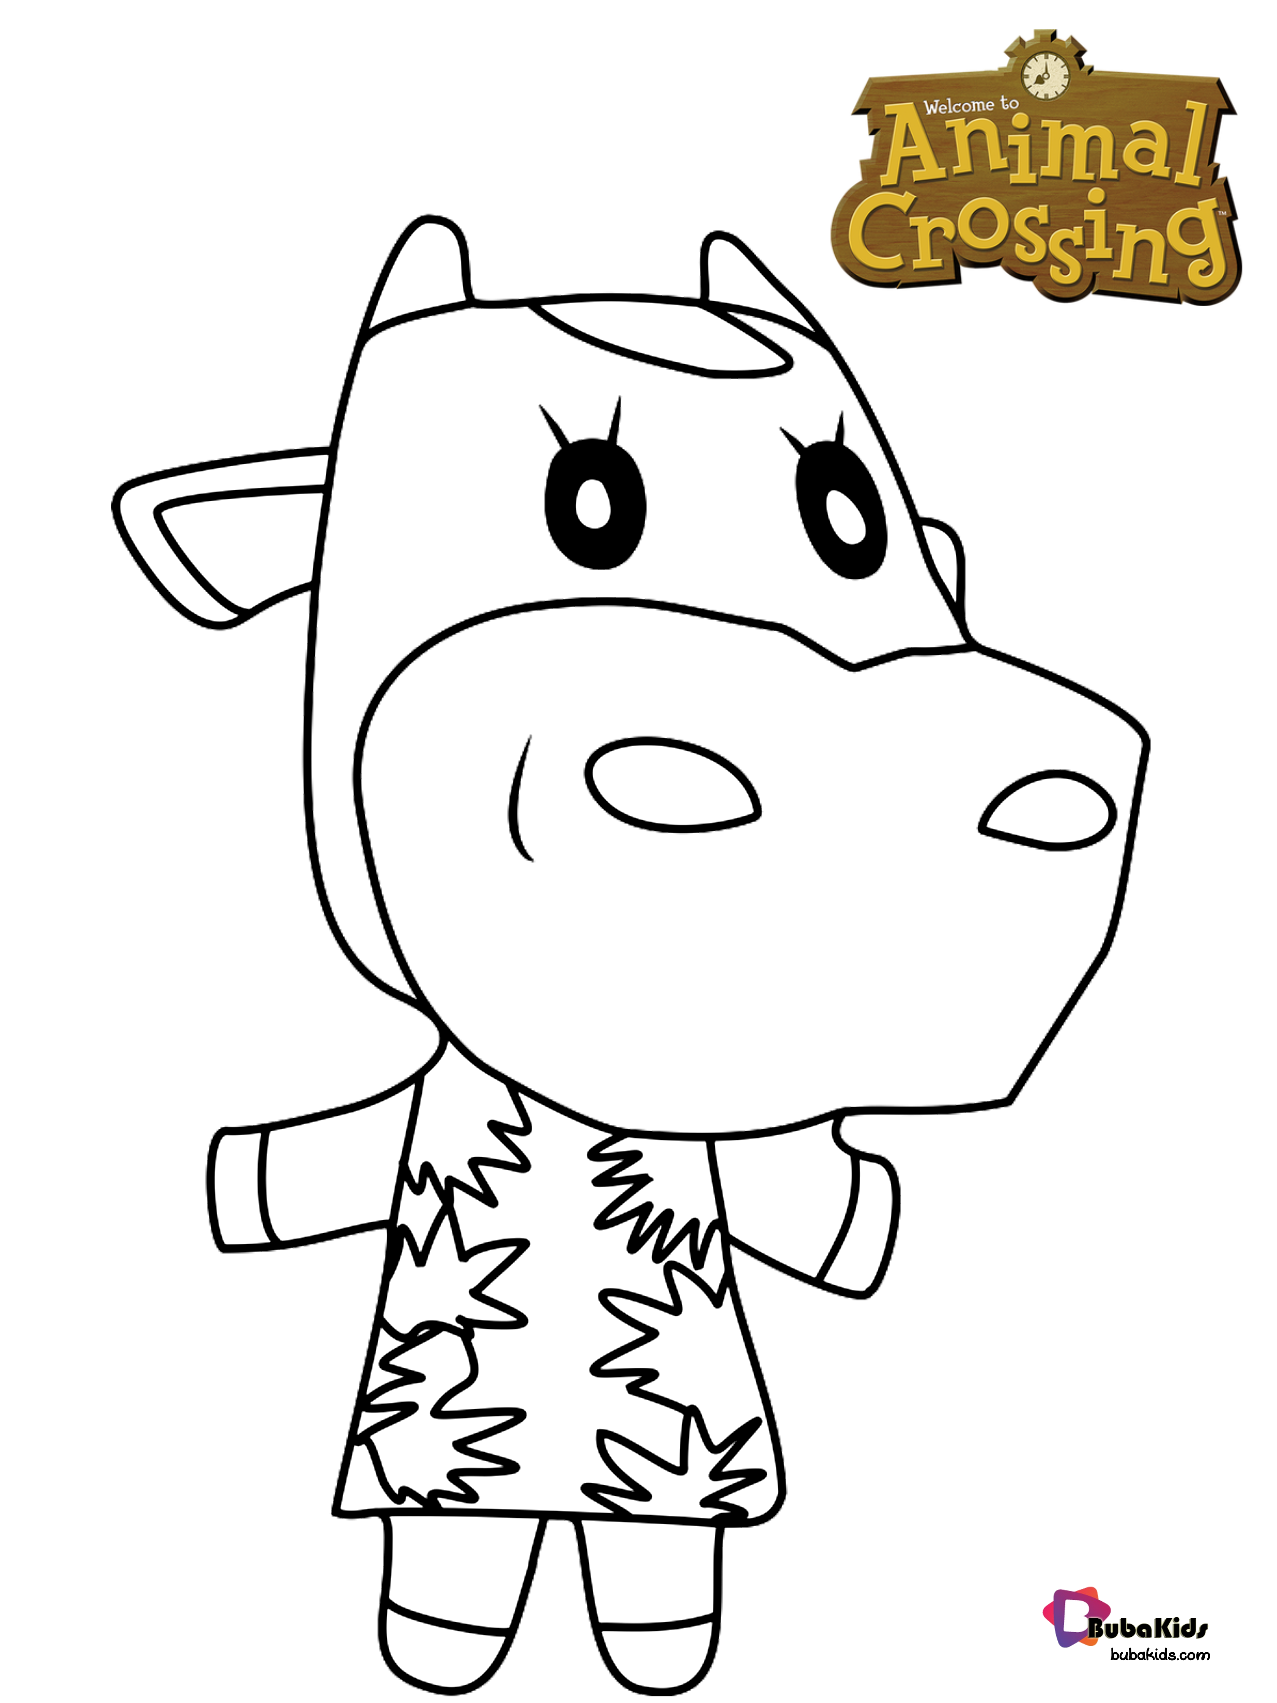 Norma Animal Crossing Character Coloring Page Free Animal Crossing Coloring Pages Collection Animal Crossing Characters Animal Crossing Cartoon Coloring Pages